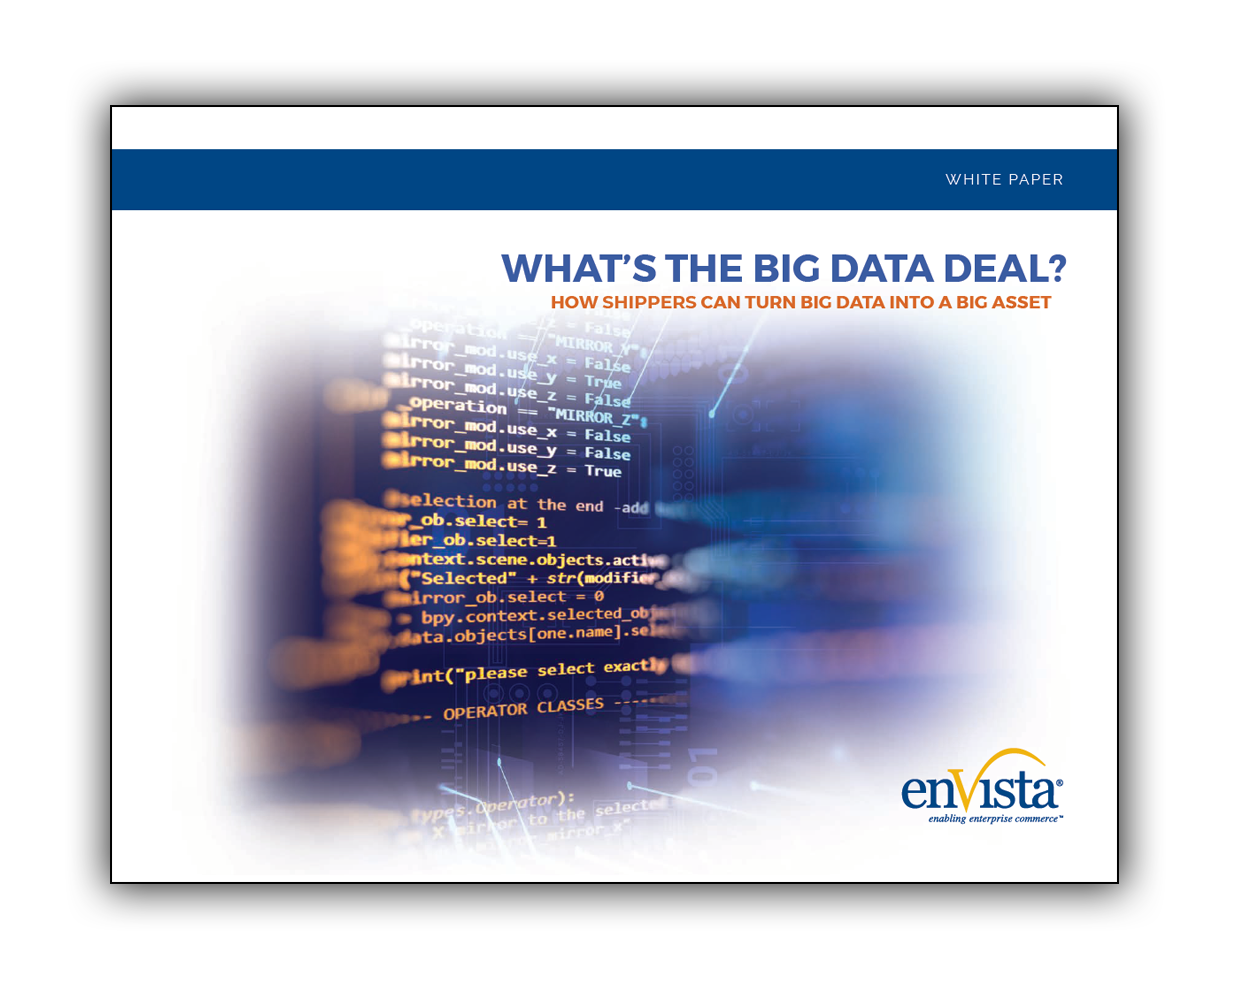 Image_whats-the-big-data-deal-1.png